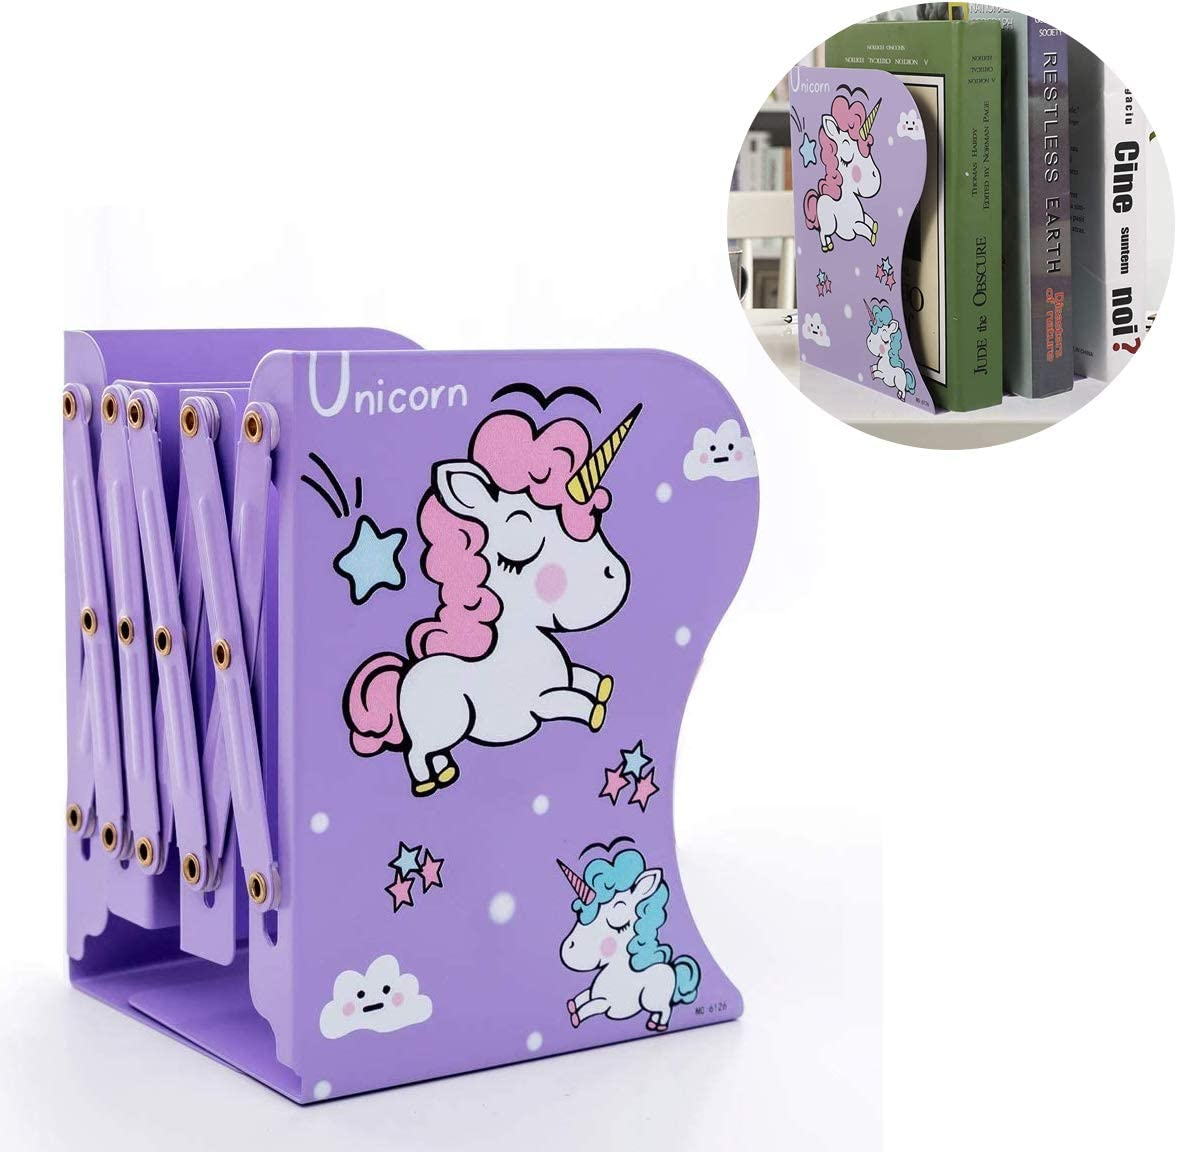 Retractable Bookends,Xiuyer Foldable Heavy Duty Unicorn Adjustable Metal Scalable Bookends Shelves Expanding Book End File Holder Nonskid Bookend For Home Office School Library Purple Blue